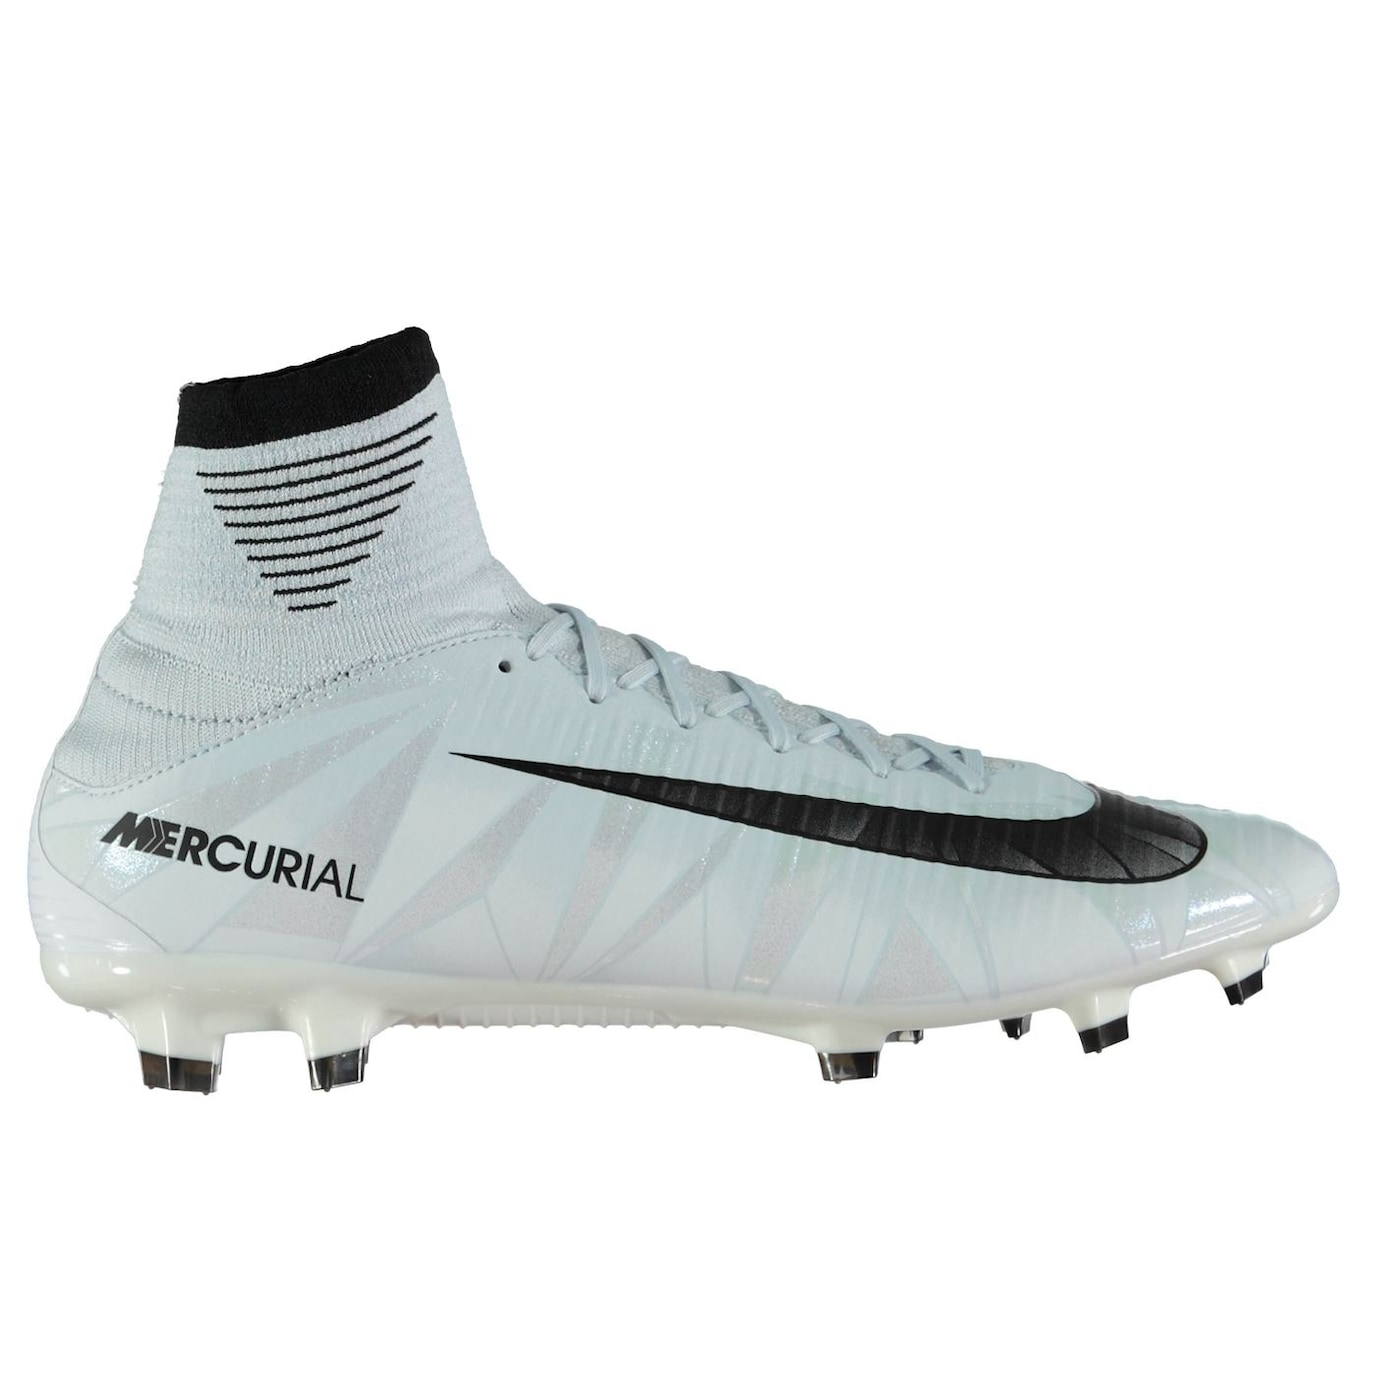 Nike Mercurial Veloce CR7 DF Mens FG Football Boots